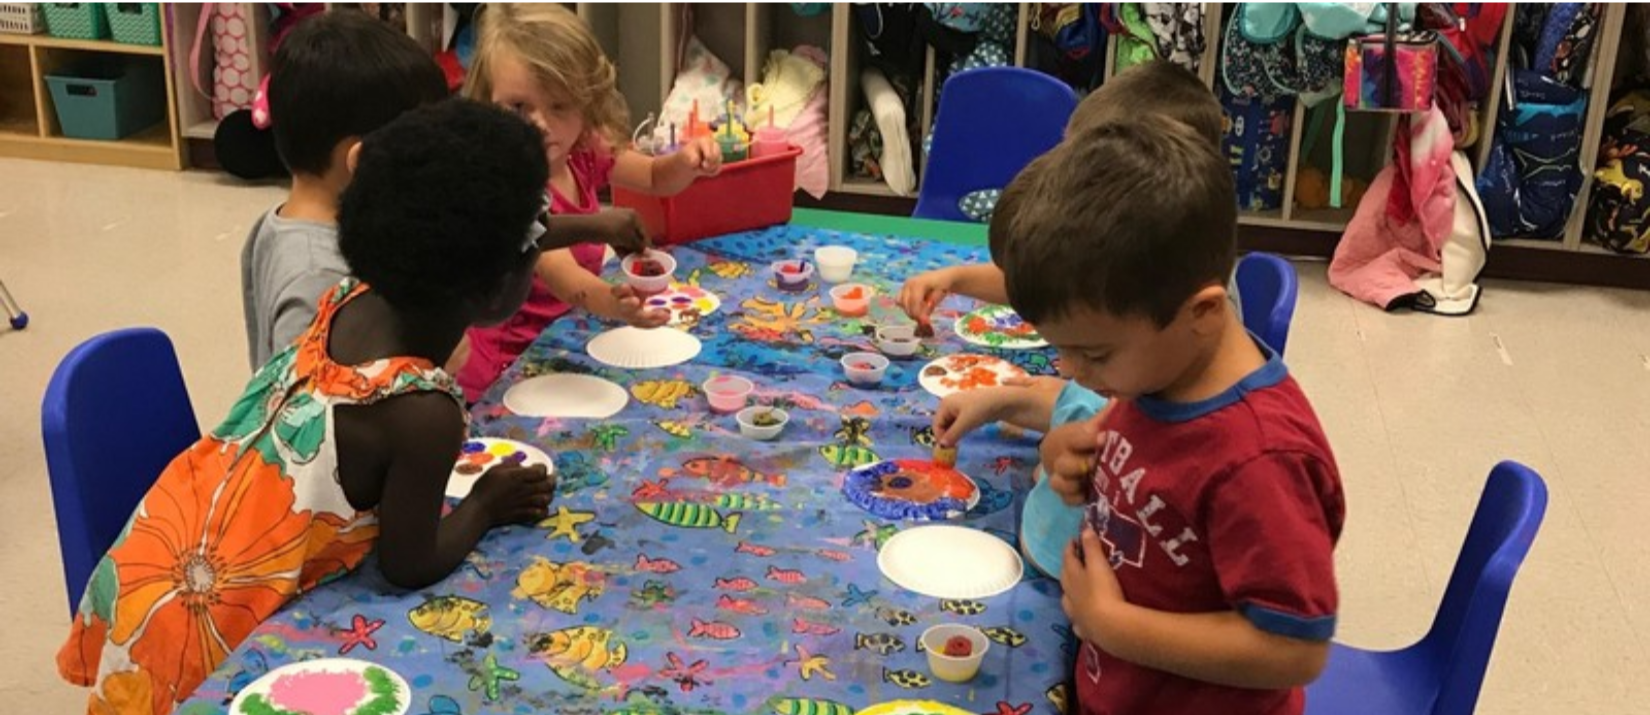 photo of students working on crafts